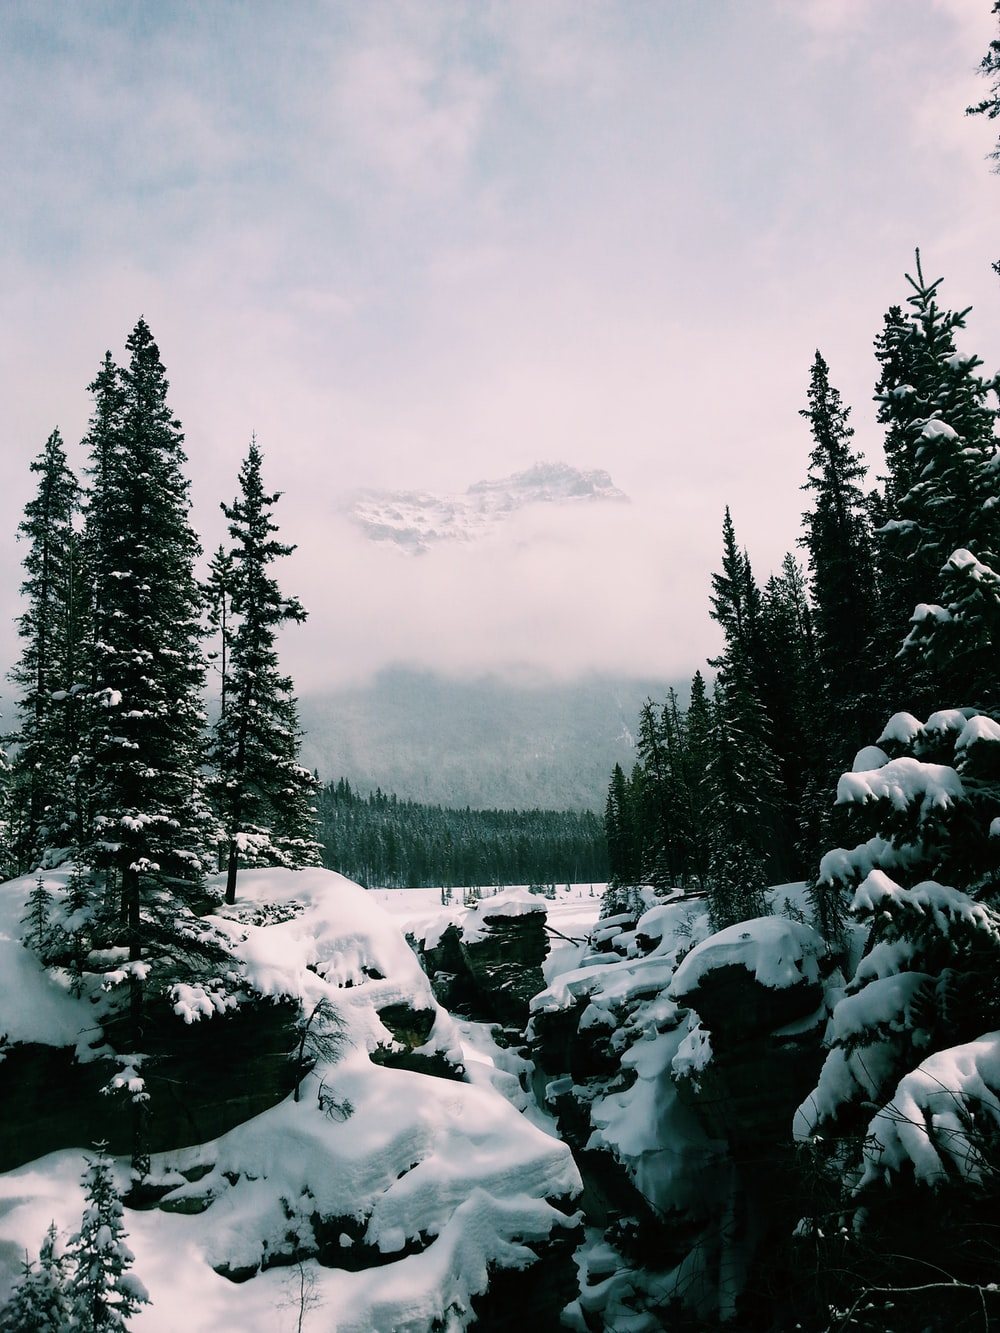 green pine trees and snow field